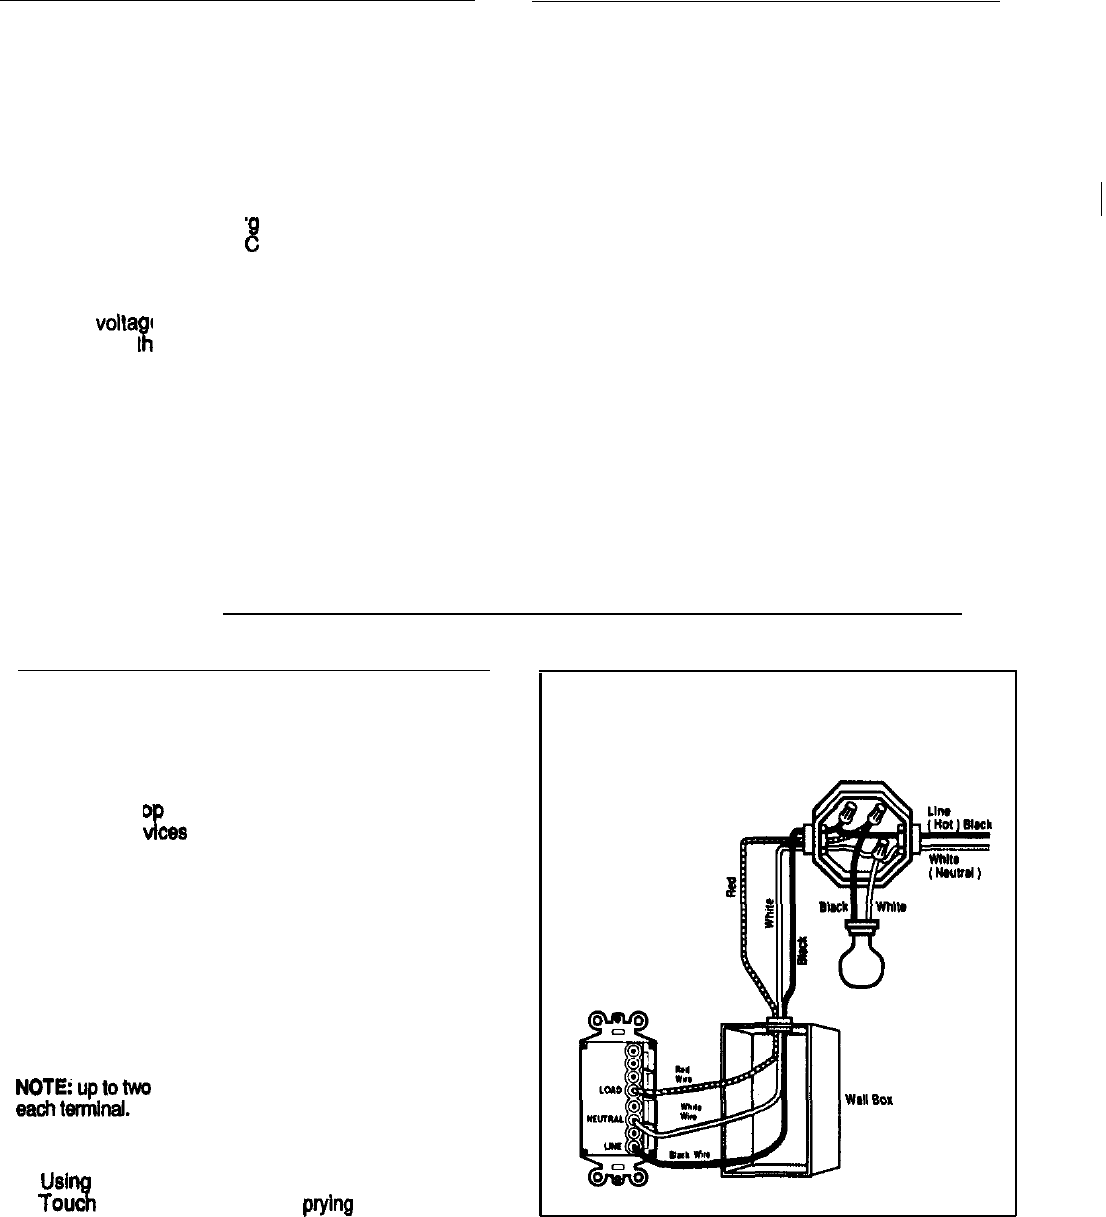 bc6e6460 465f 4f14 b026 7f71fdaa45ef bg2 page 2 of leviton surge protector 2206 user guide manualsonline com leviton 6291 wiring diagram at cos-gaming.co